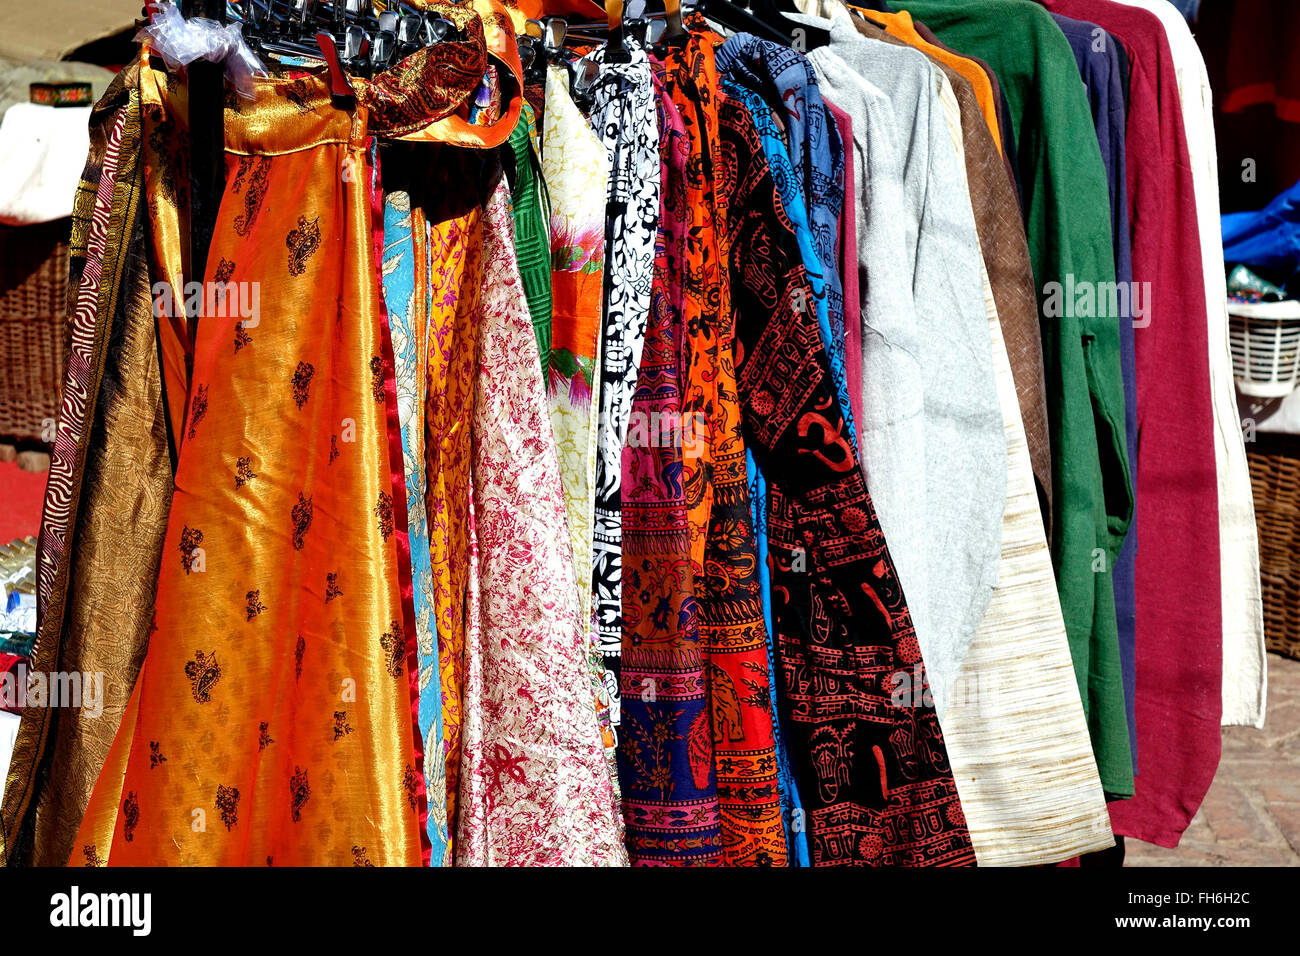 Impact of readymade garments on the